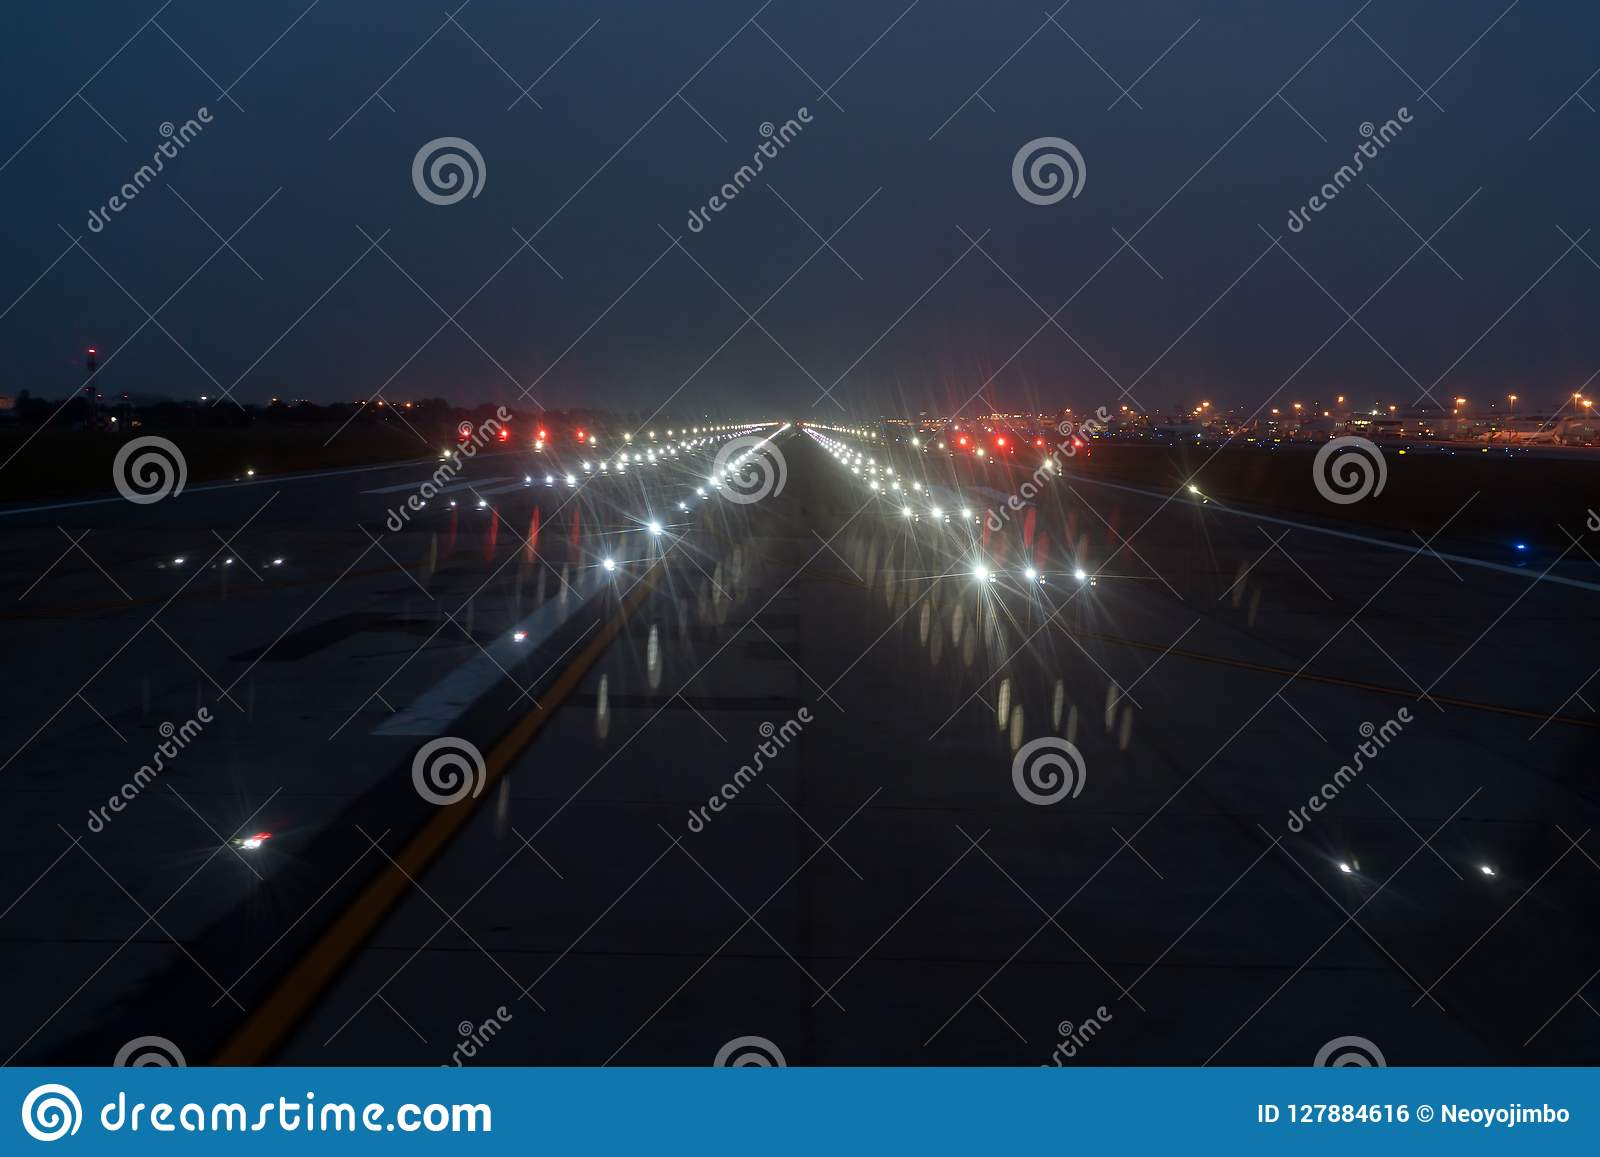 Landing Lights ON A Airport Runway At Night Sky  Stock Photo - Image